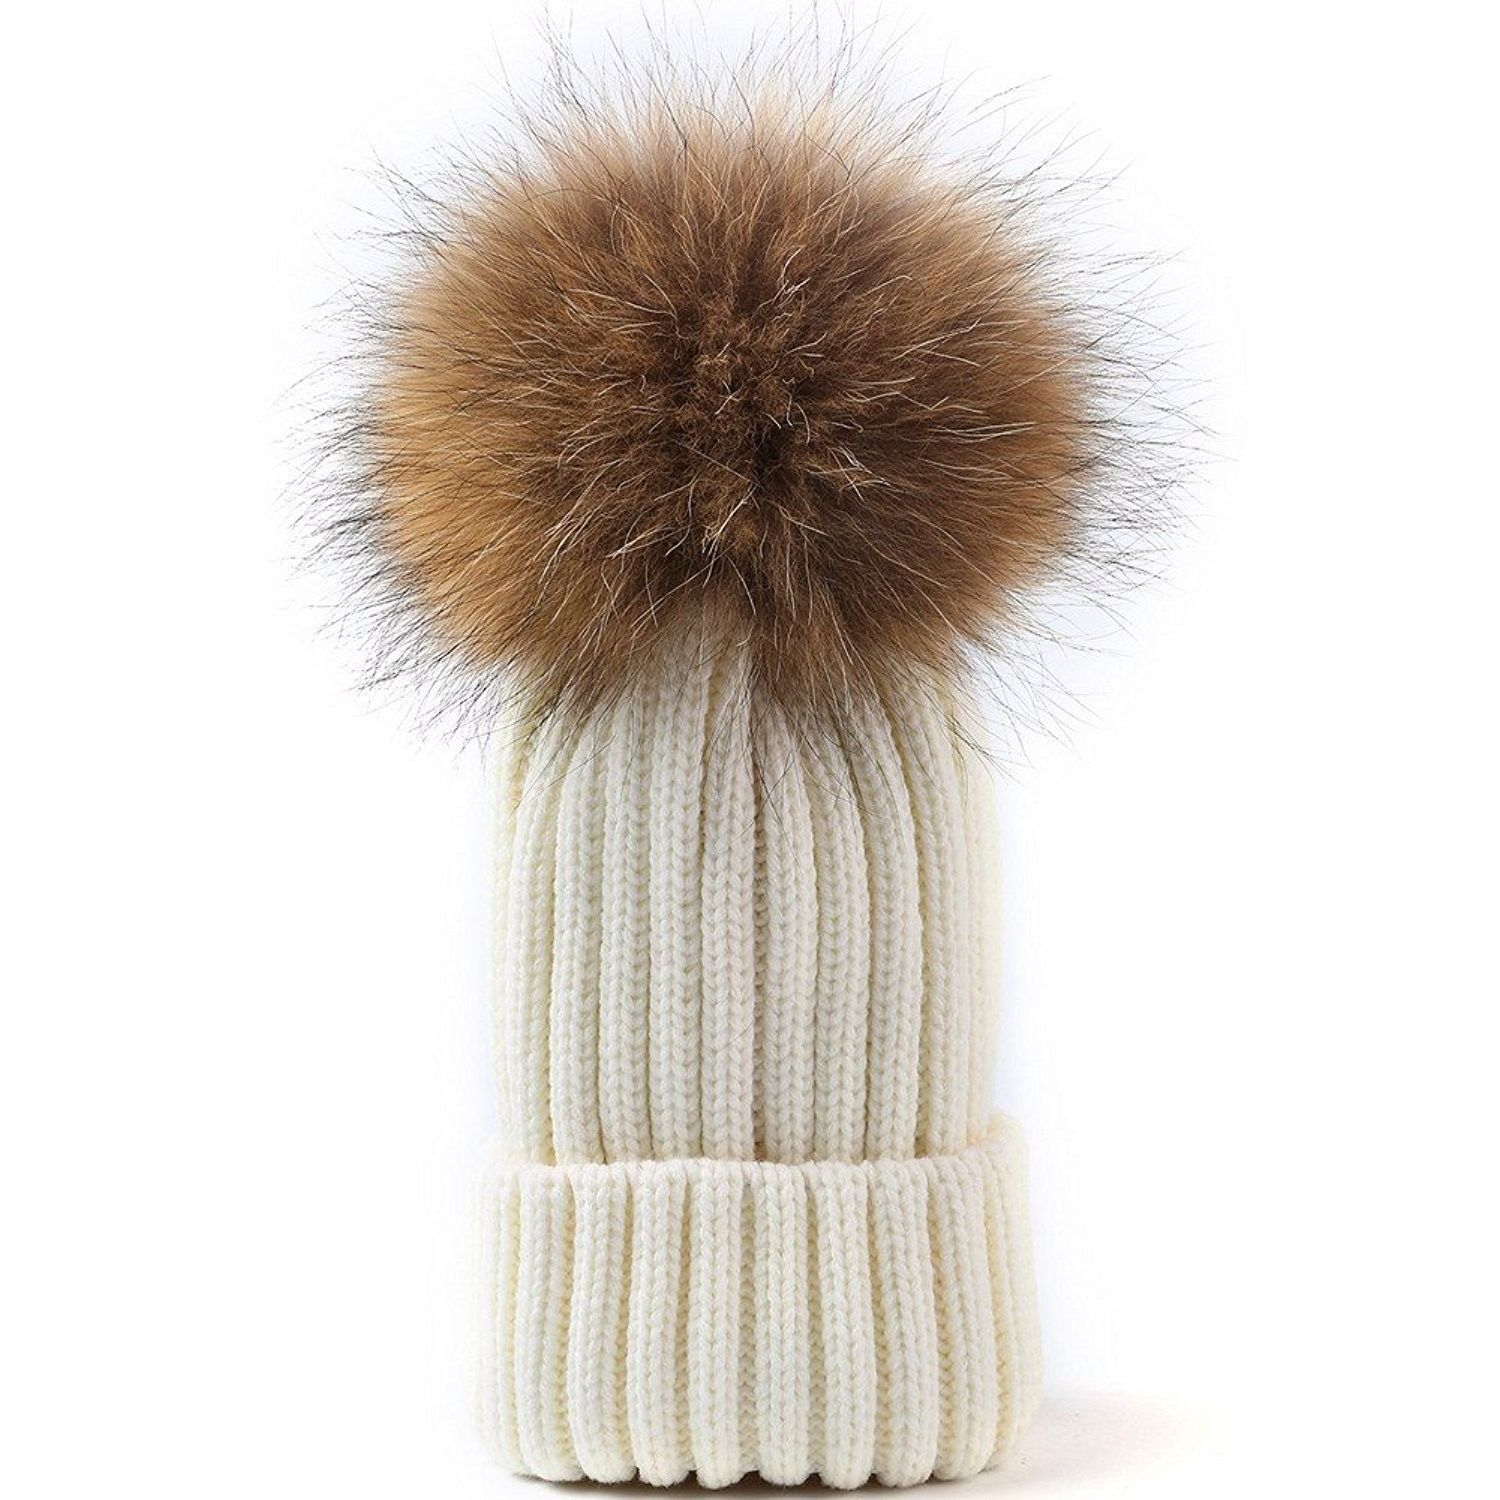 804311b4085 Womens Winter Fur hats Real Large Detachable Raccoon Fur Pom Pom Beanie Hat  - Ivory -